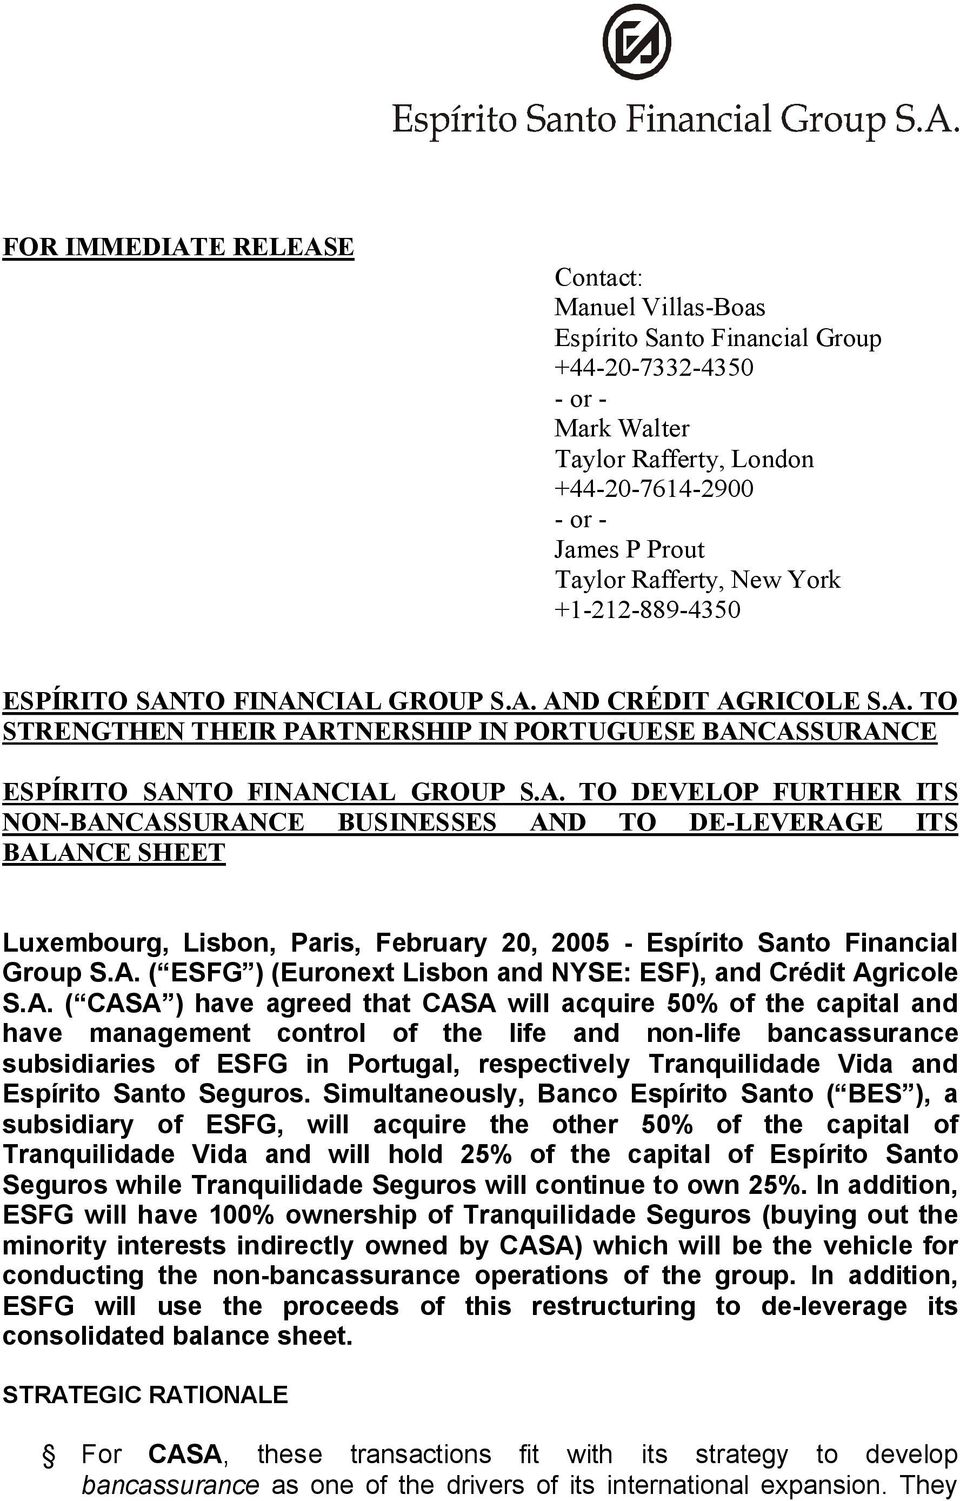 A. ( ESFG ) (Euronext Lisbon and NYSE: ESF), and Crédit Agricole S.A. ( CASA ) have agreed that CASA will acquire 50% of the capital and have management control of the life and non life bancassurance